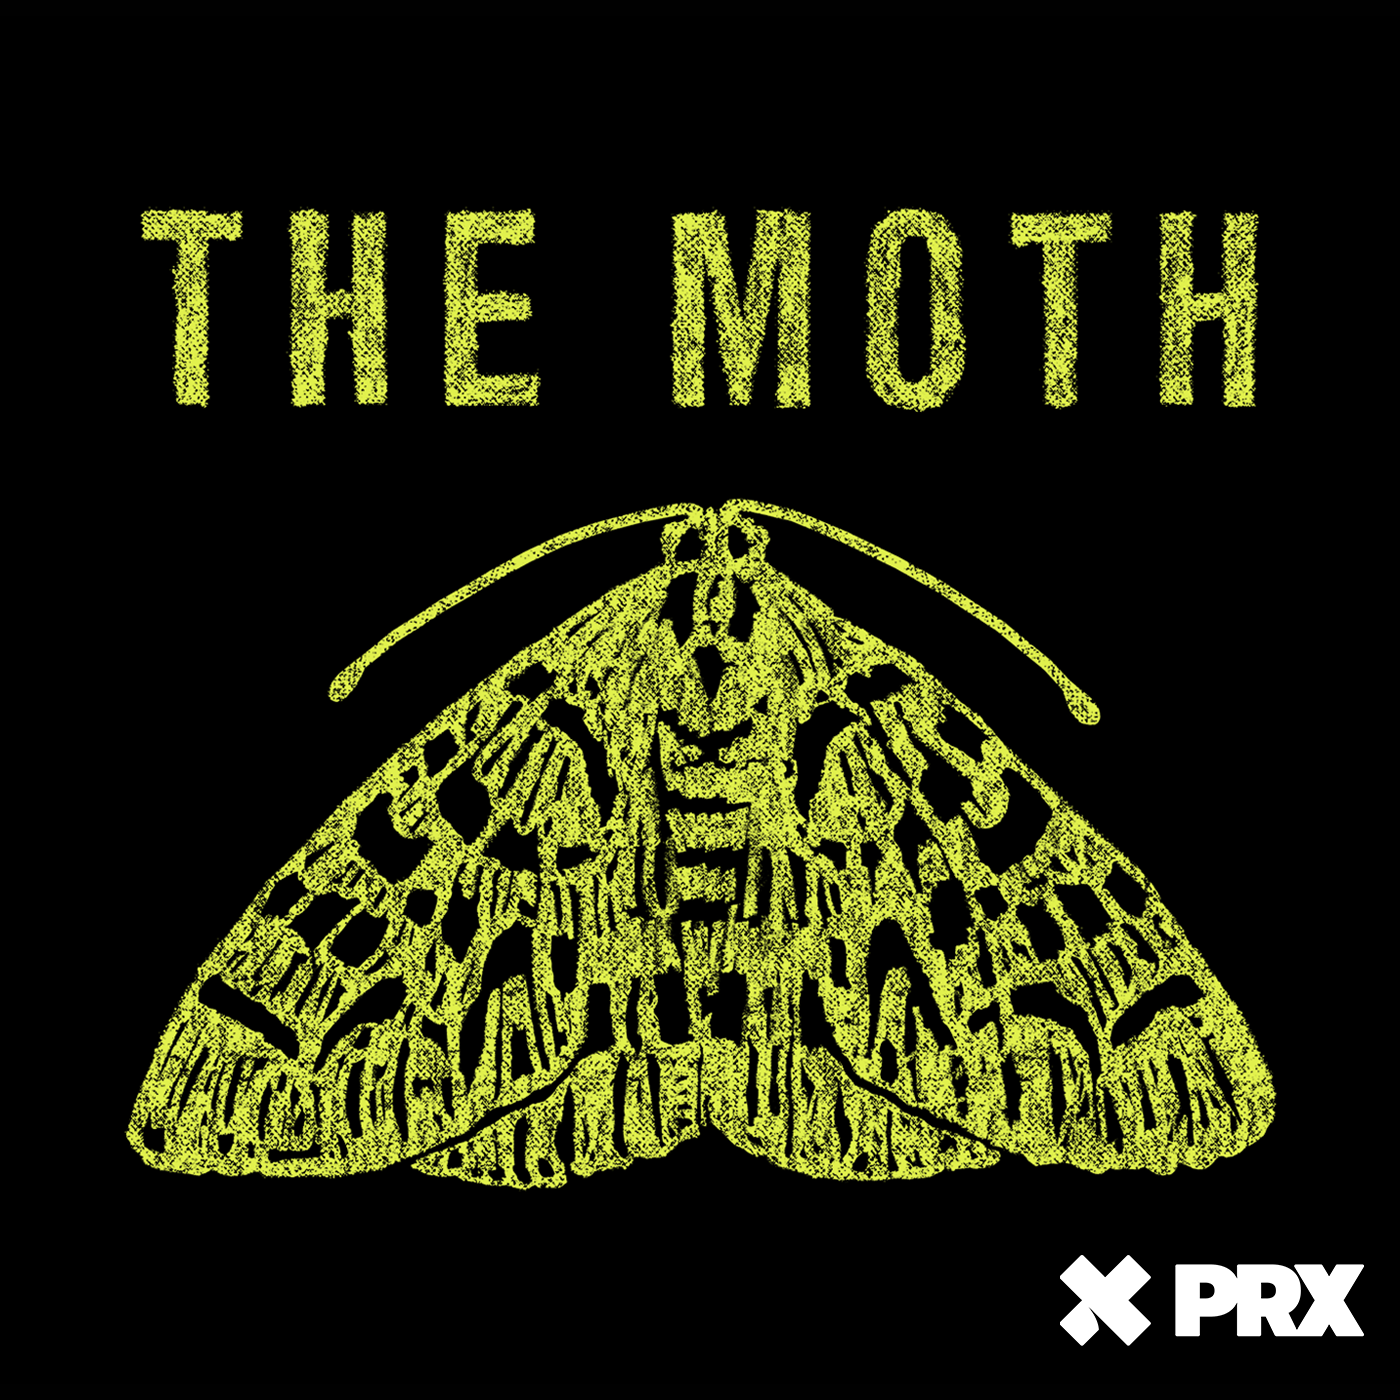 The Moth Radio Hour: One Thing in Common